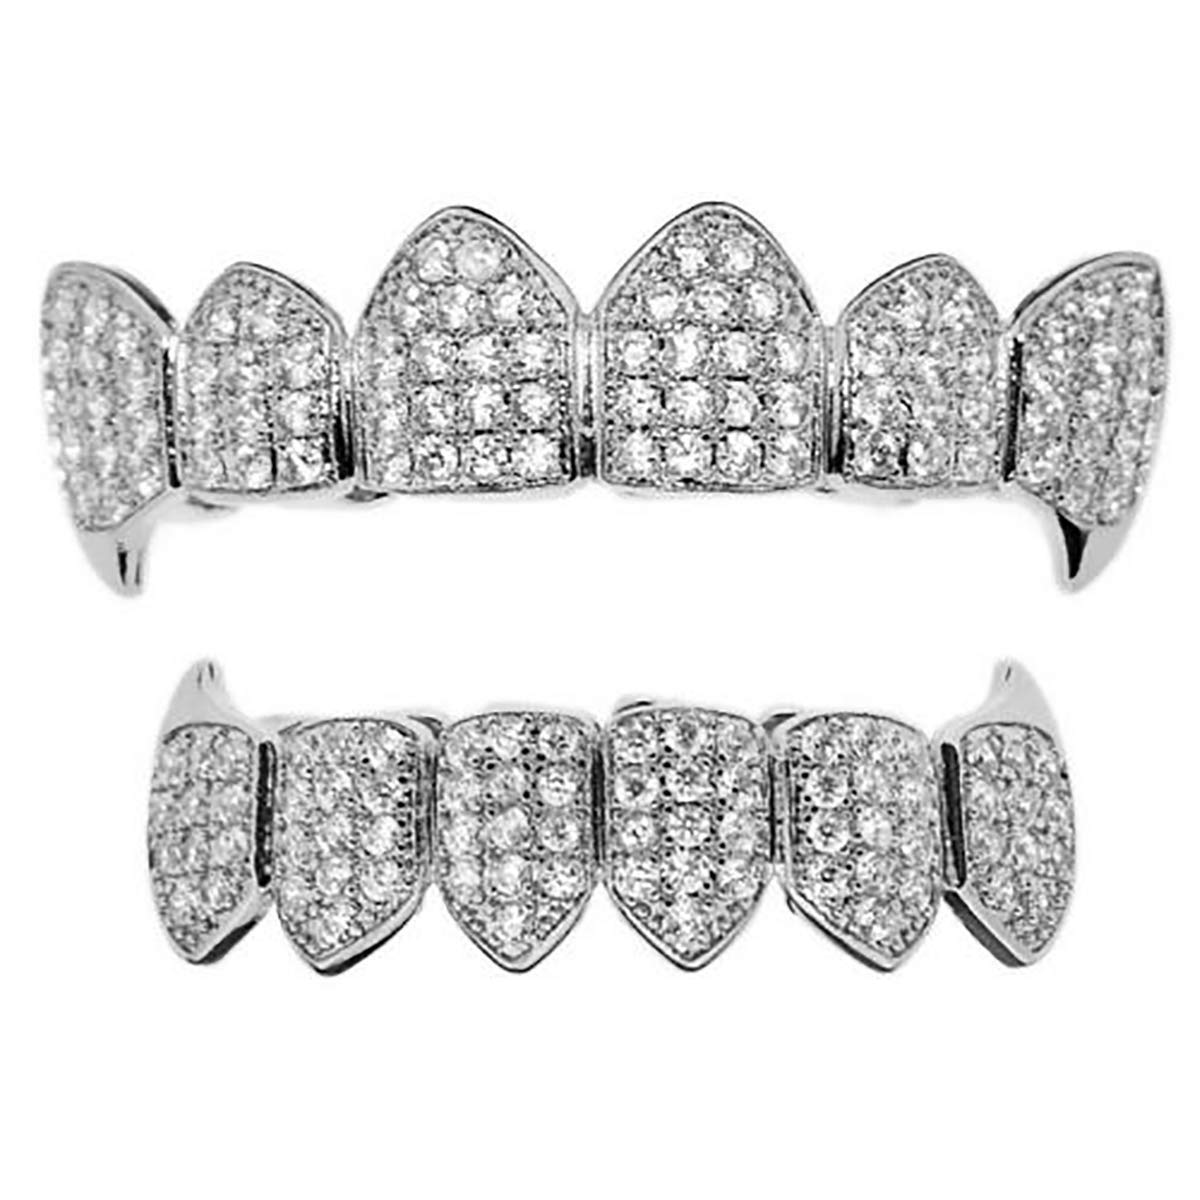 18K White Gold Plated CZ Cluster Custom Slugs Top Bottom Grillz Fangs Mouth Teeth Grills Set - Grillz, Teeth Cap, Iced Out Grillz (Bottom) (Top & Bottom Set) by Shop-iGold